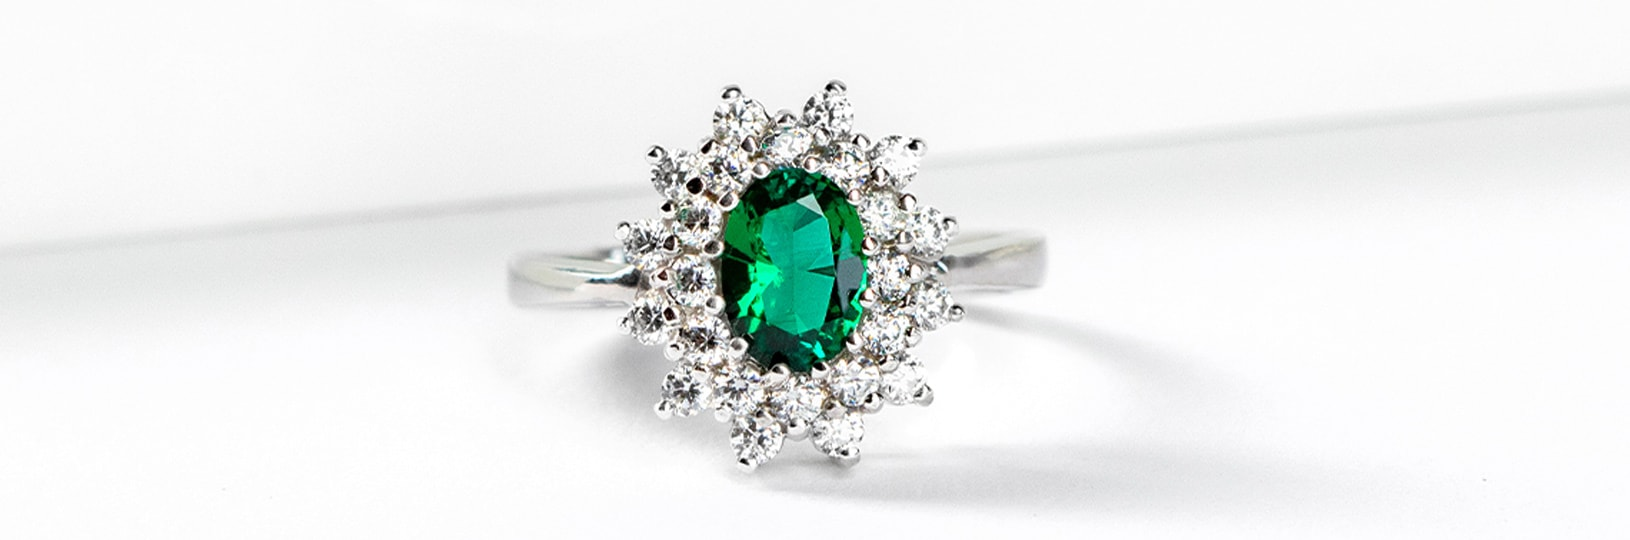 An emerald stone in a halo setting